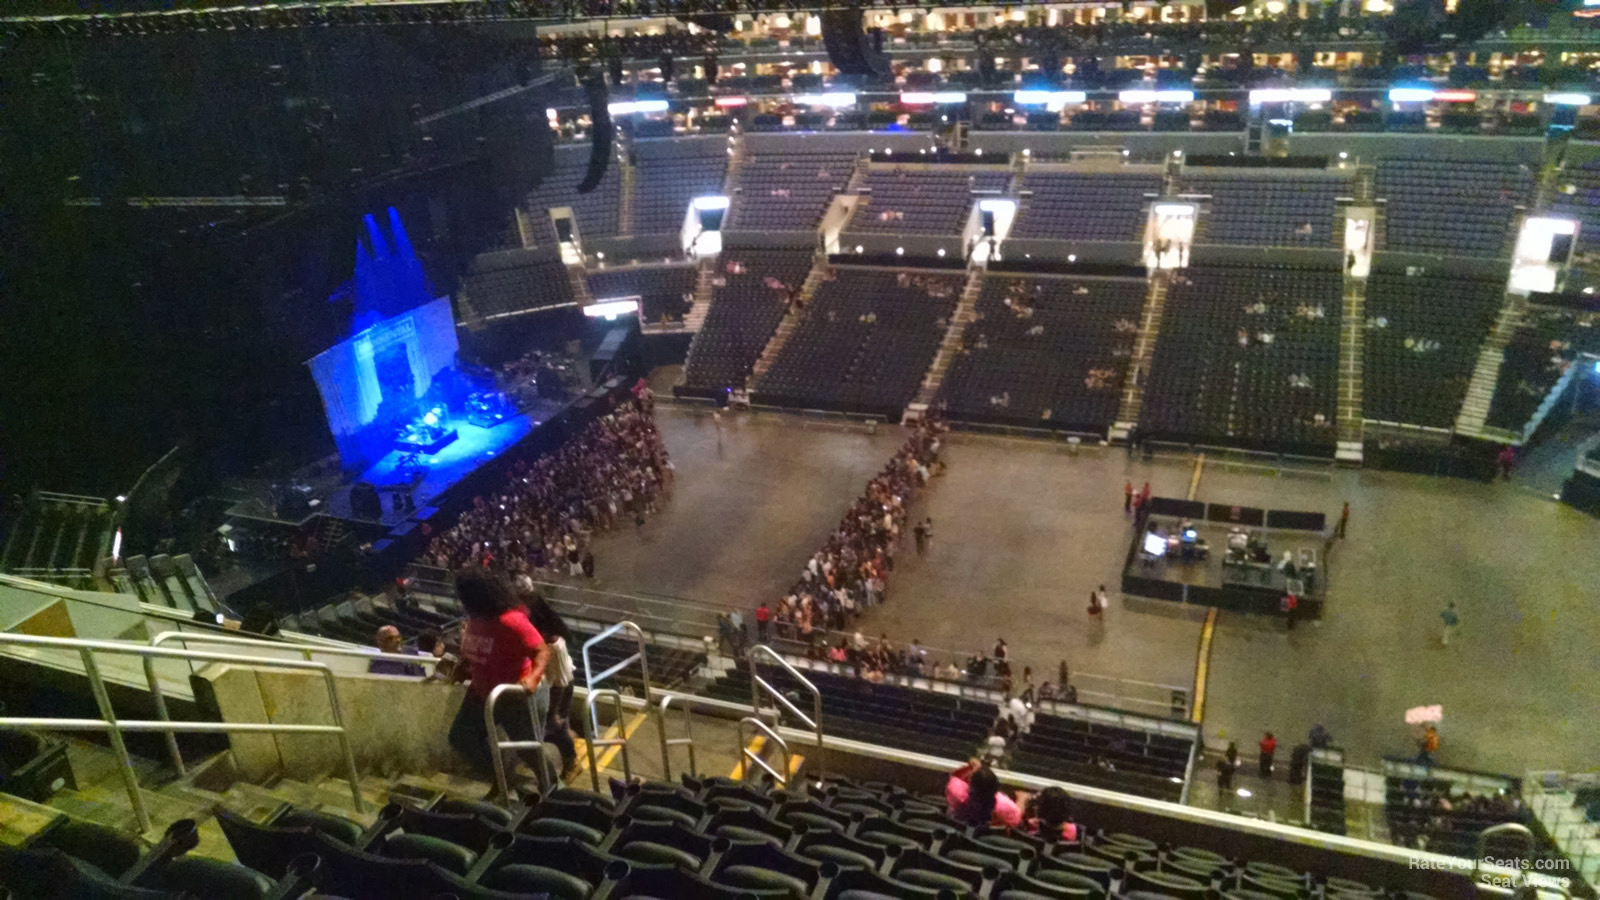 staples center section 317 concert seating - rateyourseats